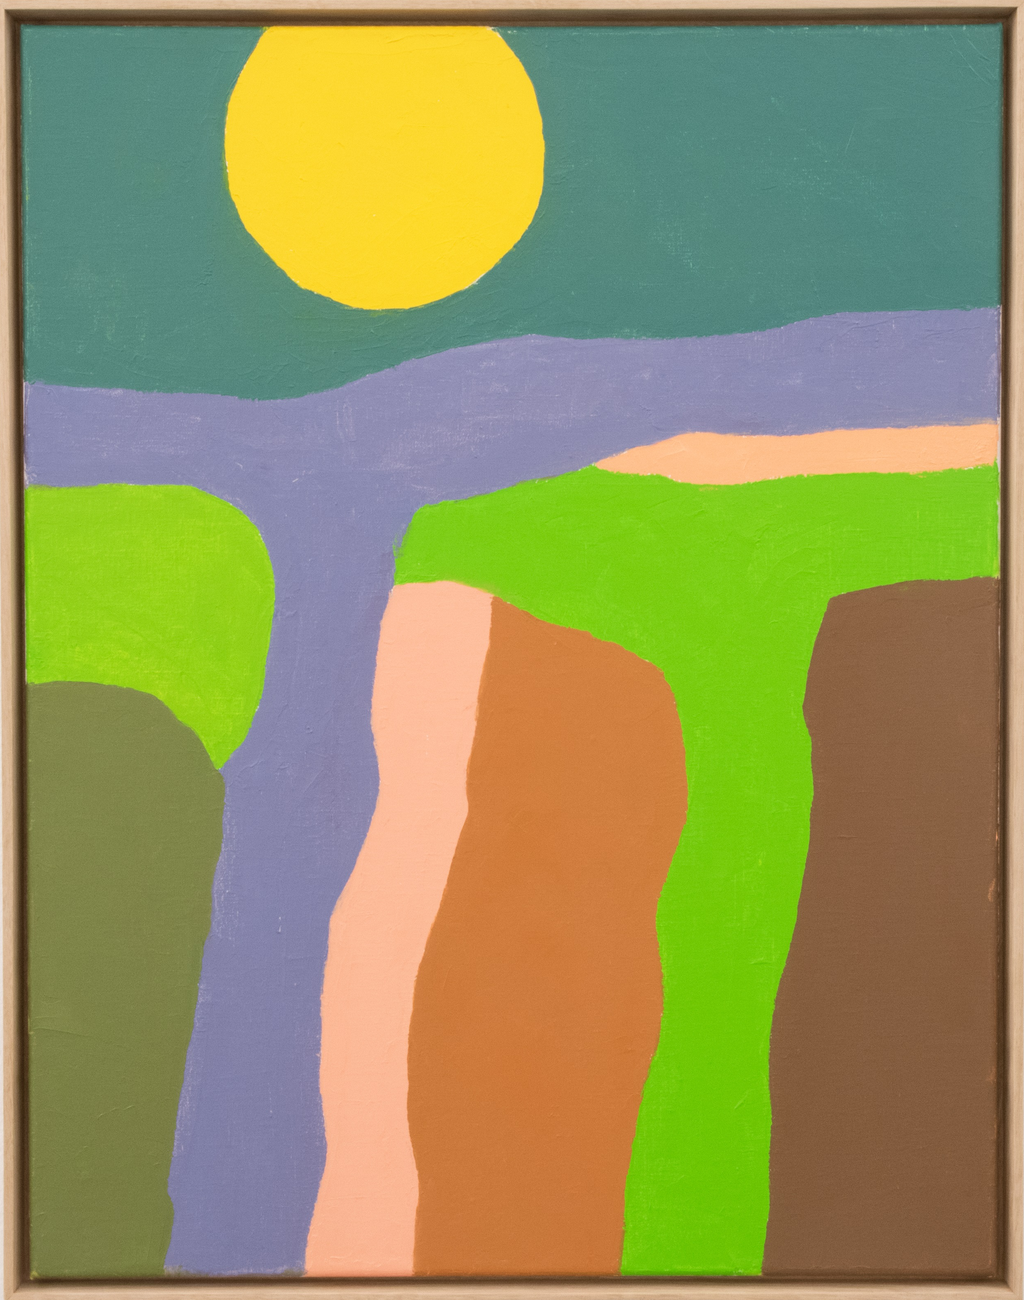 Etel Adnan, abstract painting with yellow circle and multicolored shapes